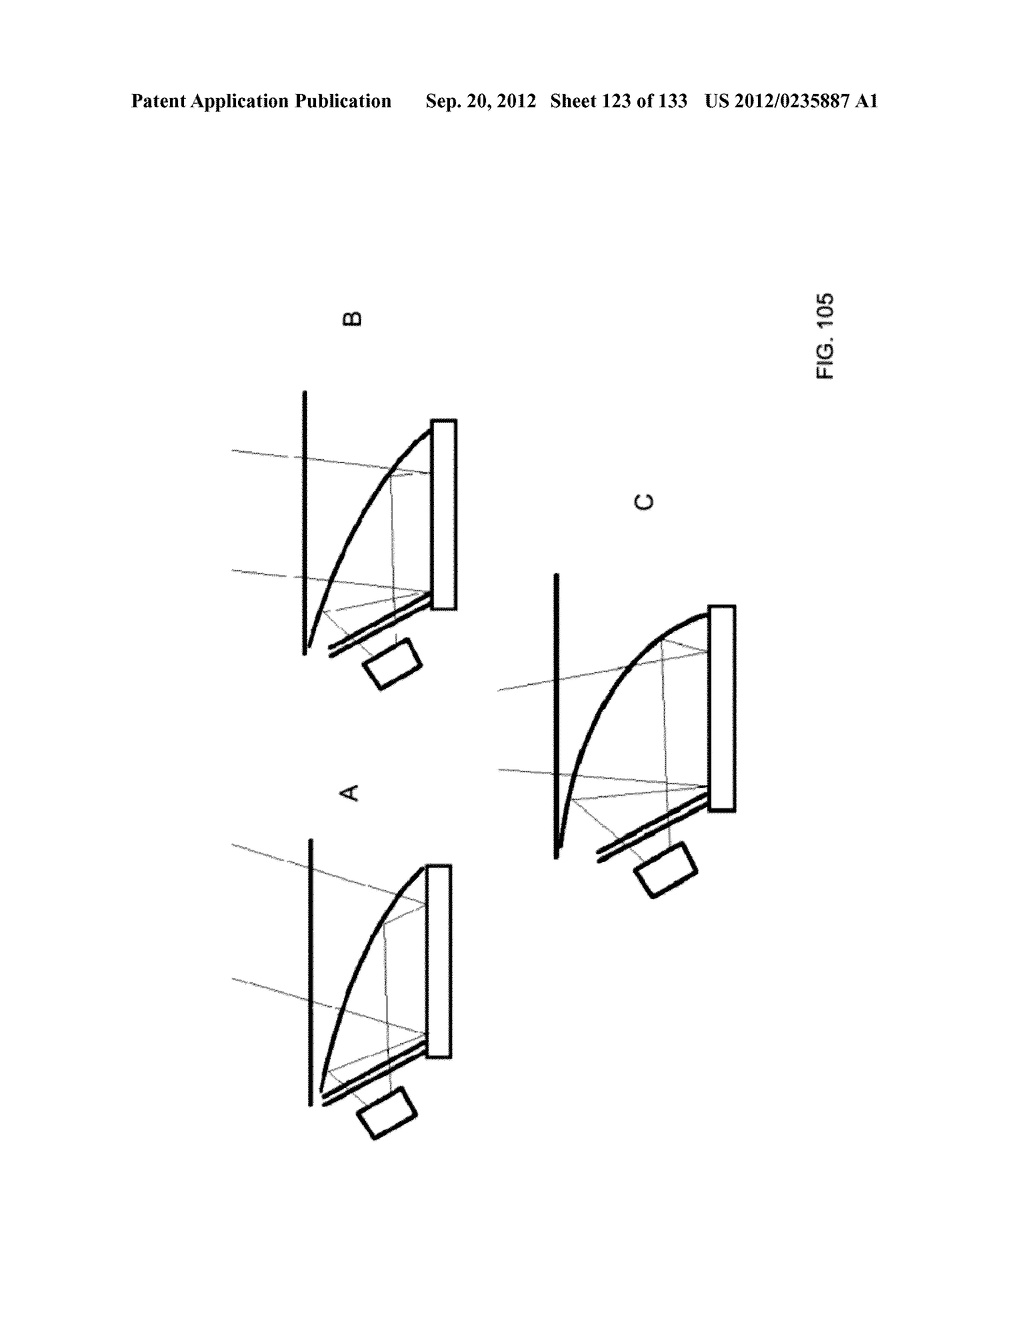 SEE-THROUGH NEAR-EYE DISPLAY GLASSES INCLUDING A PARTIALLY REFLECTIVE,     PARTIALLY TRANSMITTING OPTICAL ELEMENT AND AN OPTICALLY FLAT FILM - diagram, schematic, and image 124